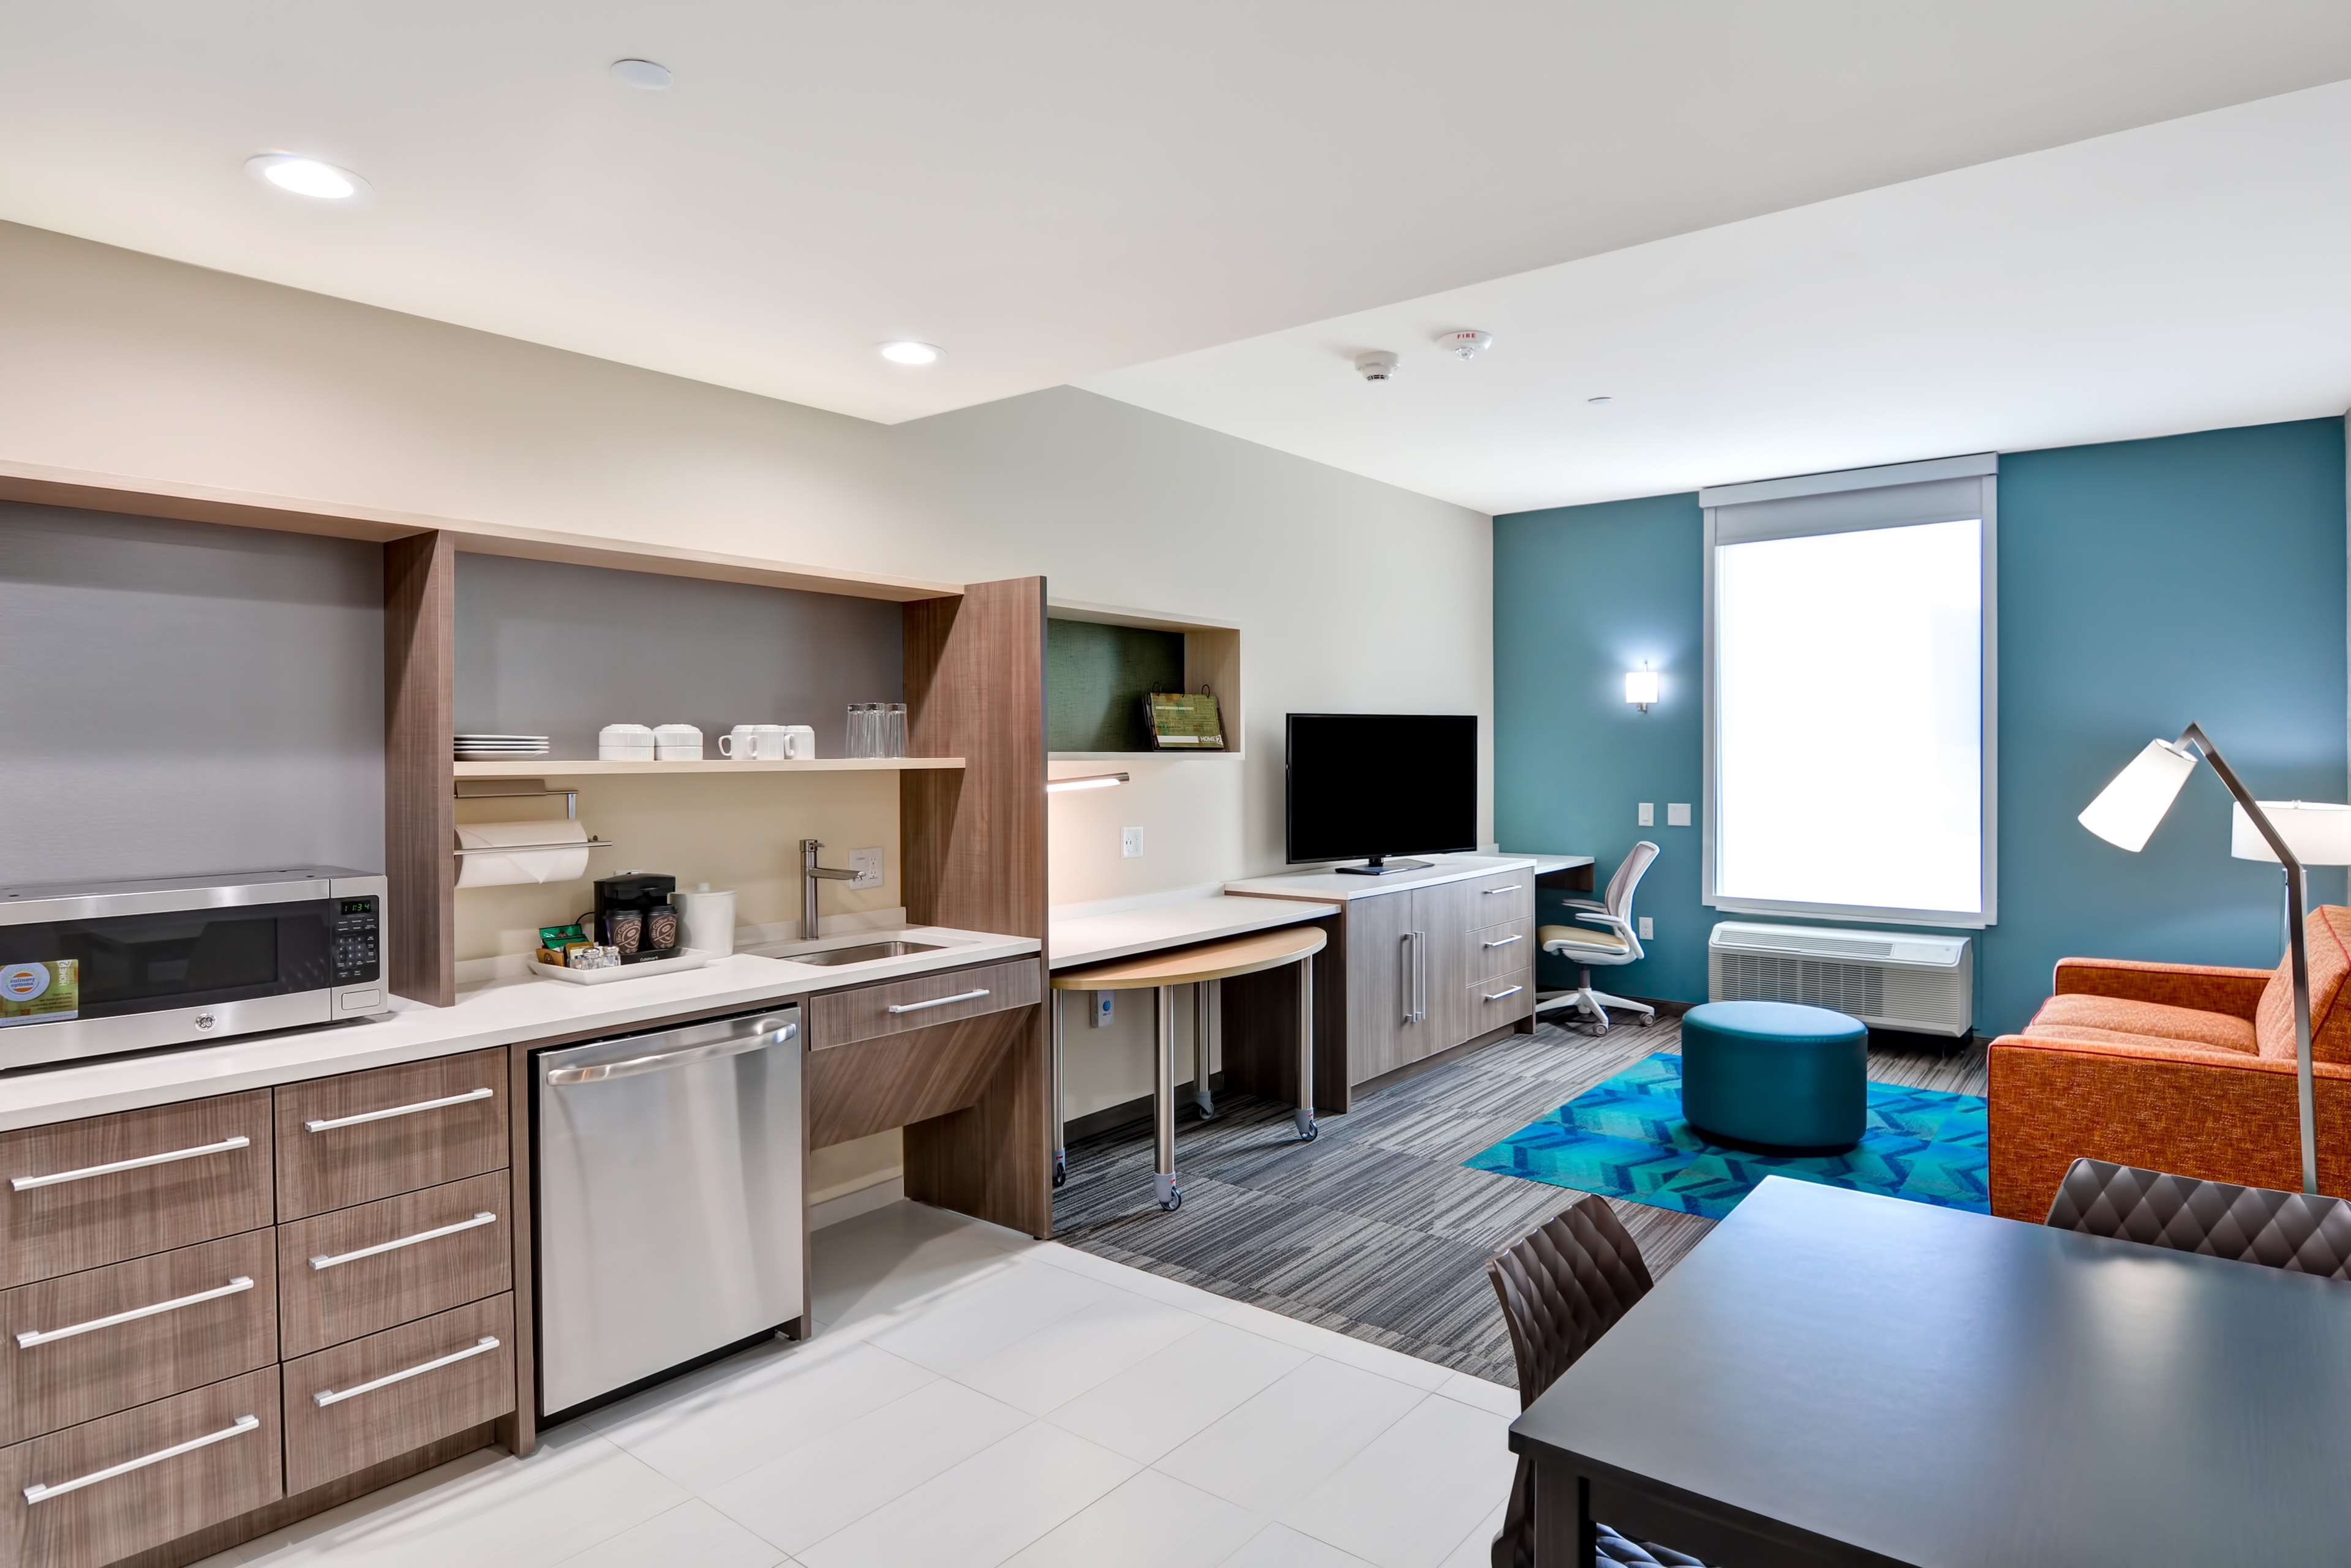 Home2 Suites by Hilton OKC Midwest City Tinker AFB image 19